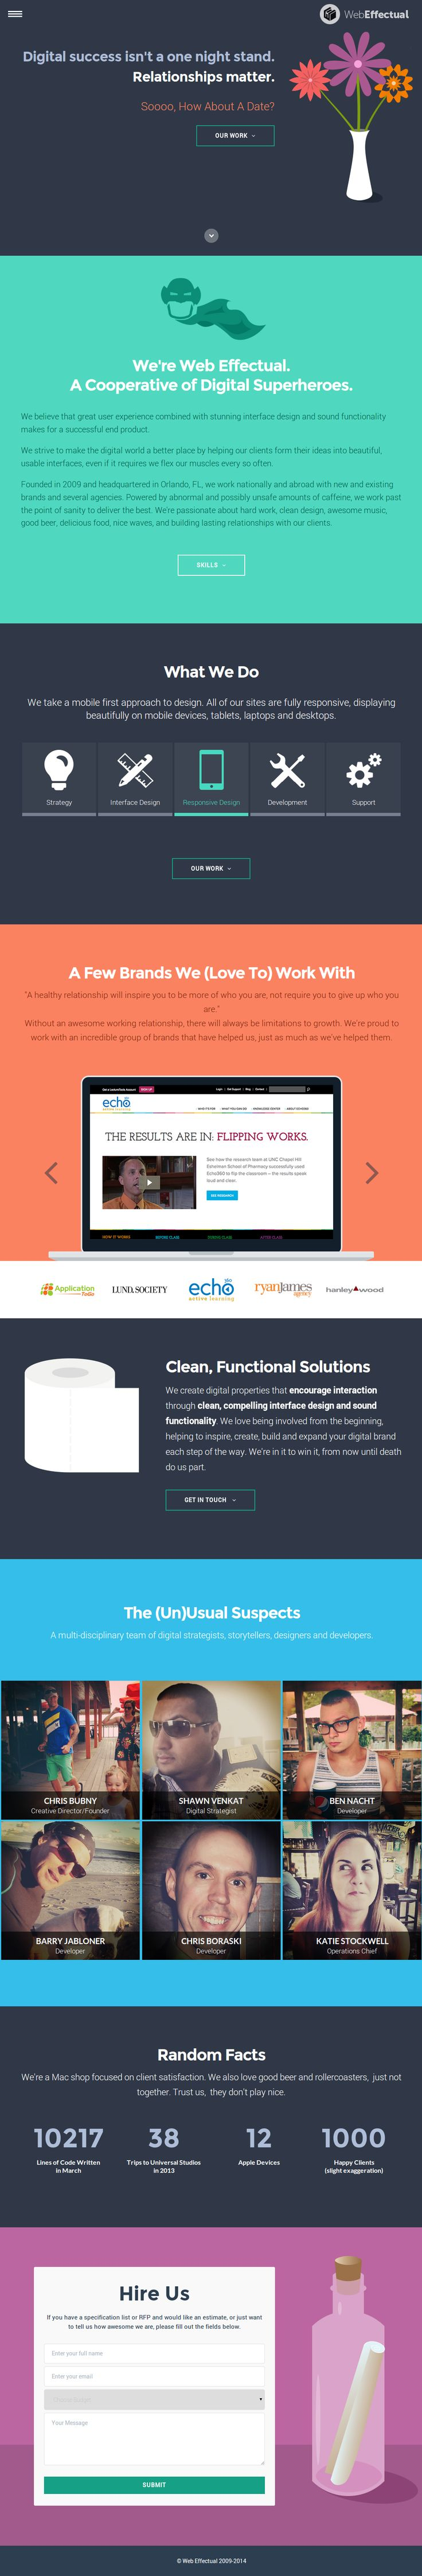 Web Effectual - creative - #hamburger #slidingmenu #hover-color #click-carousel #logowall #picblurb #stats #counter #flat #contact-form #flat #stickymenu// #blue #green #orange #purple